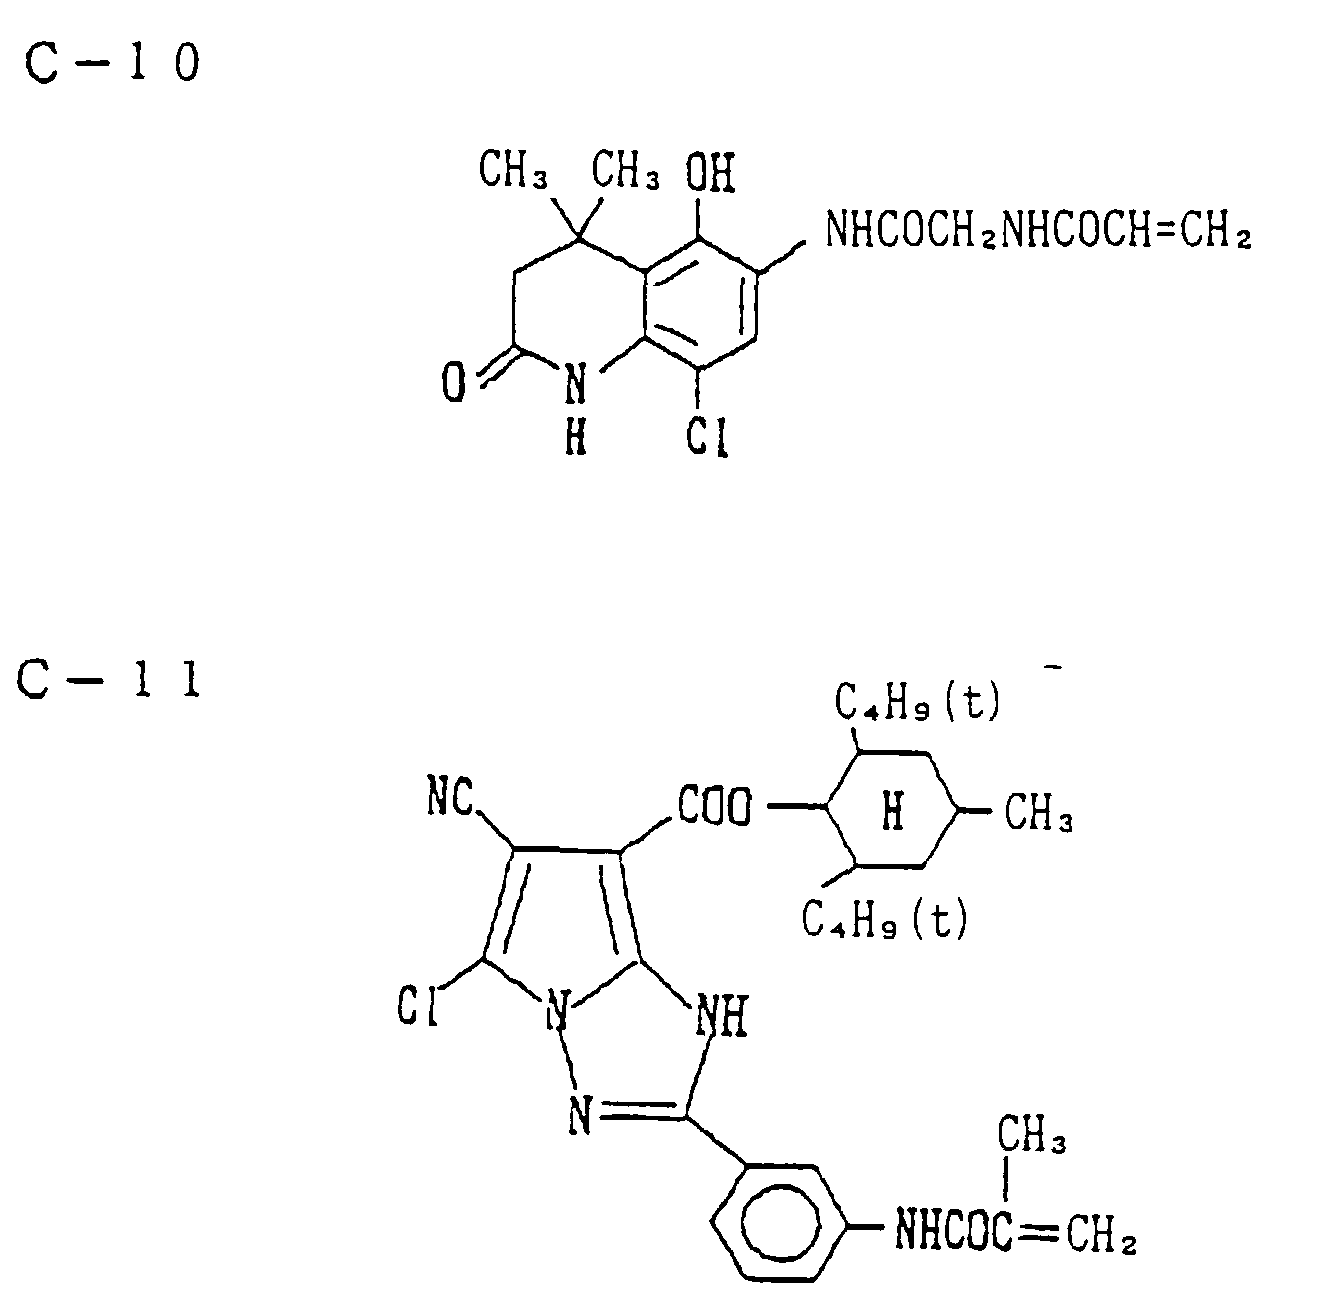 hight resolution of examples of the non color forming monomer i e the monomer that does not undergo a coupling reaction with an oxidation product of a color developing agent